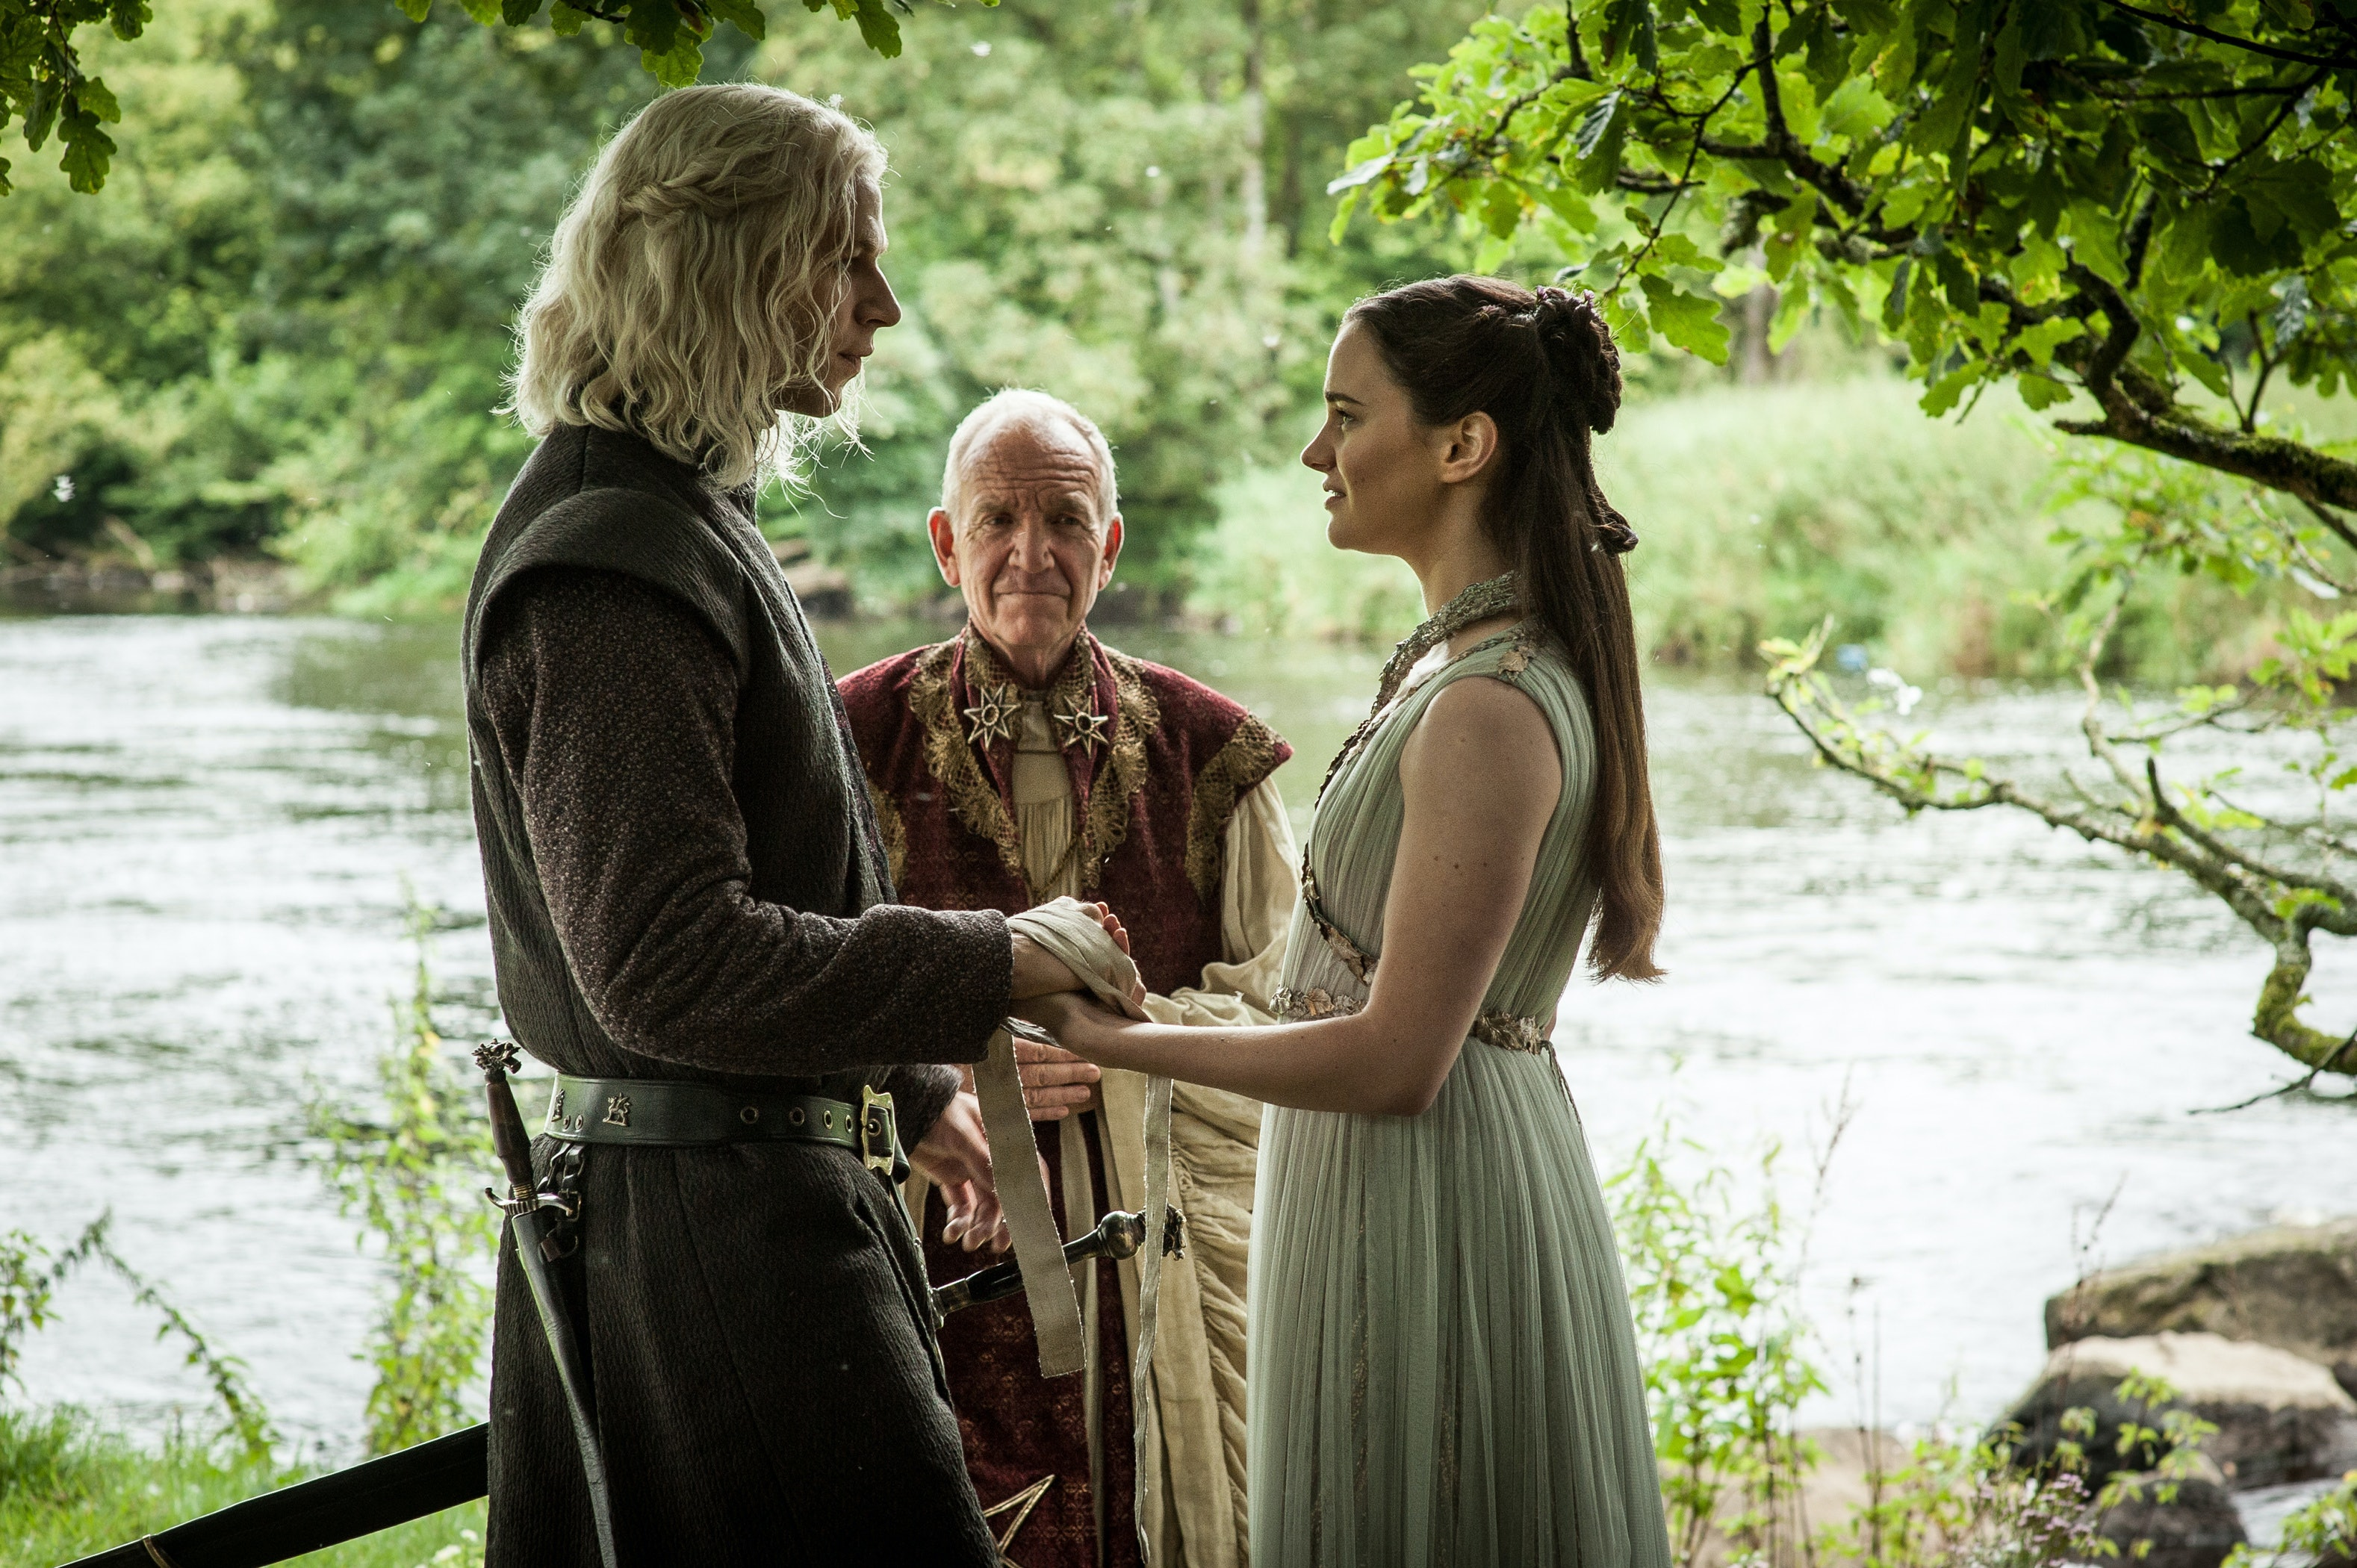 'More than billion' illegal downloads of Game Of Thrones